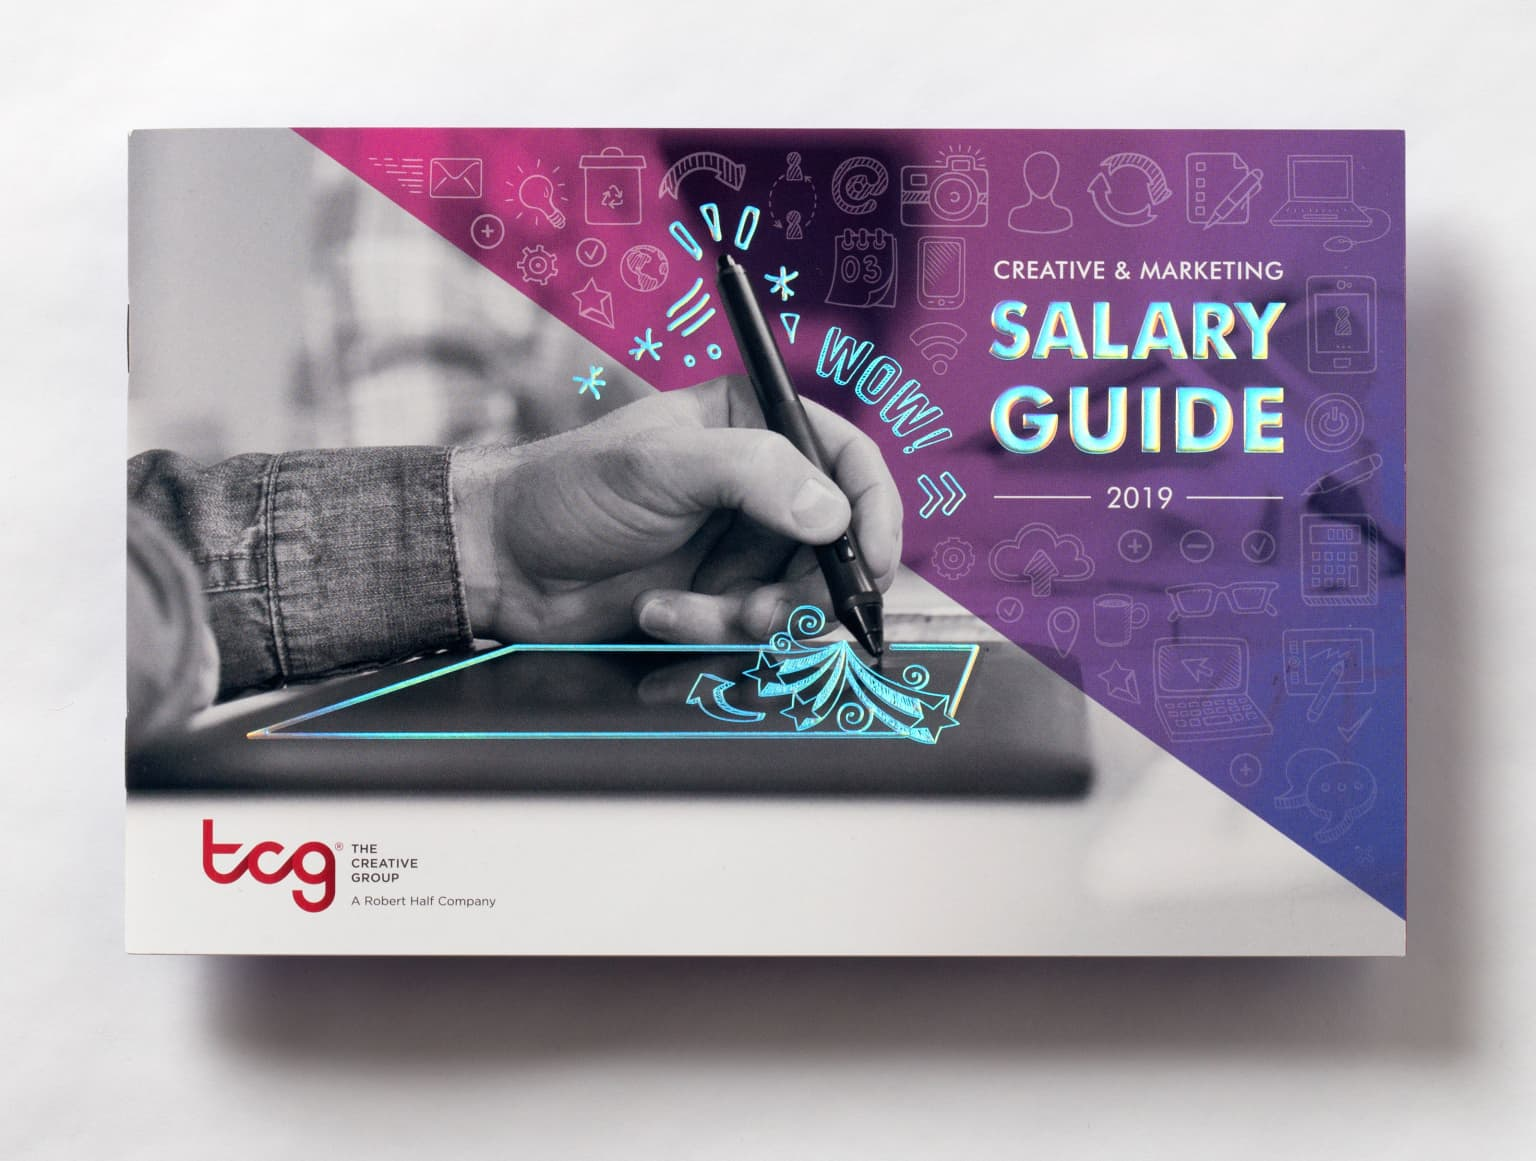 The Creative Group 2019 Salary Guide